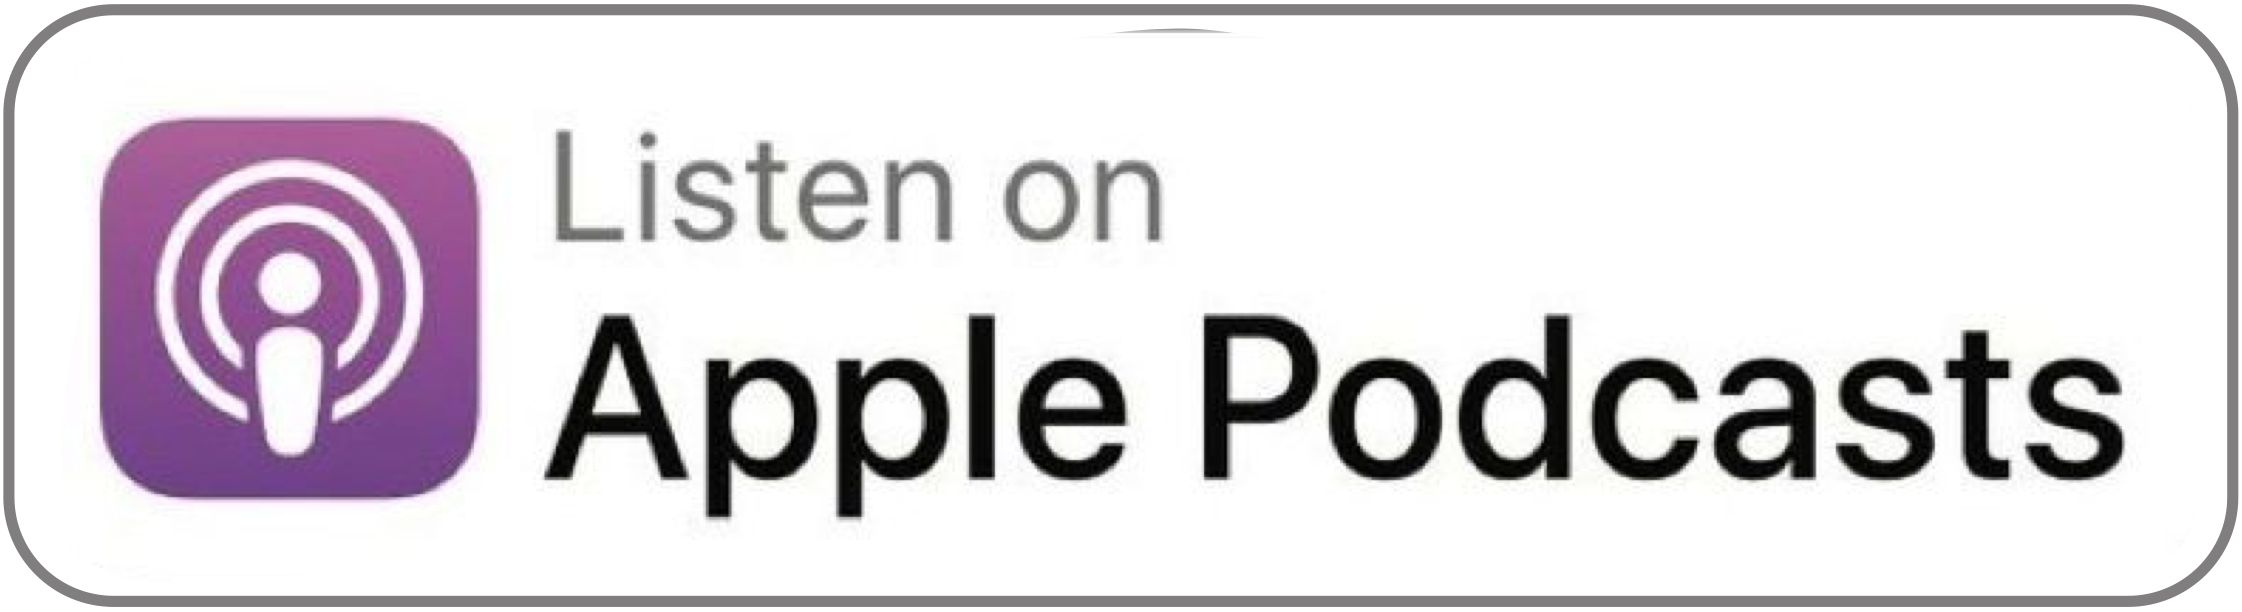 apple-podcast-png-applepodcastlogo-2242.png